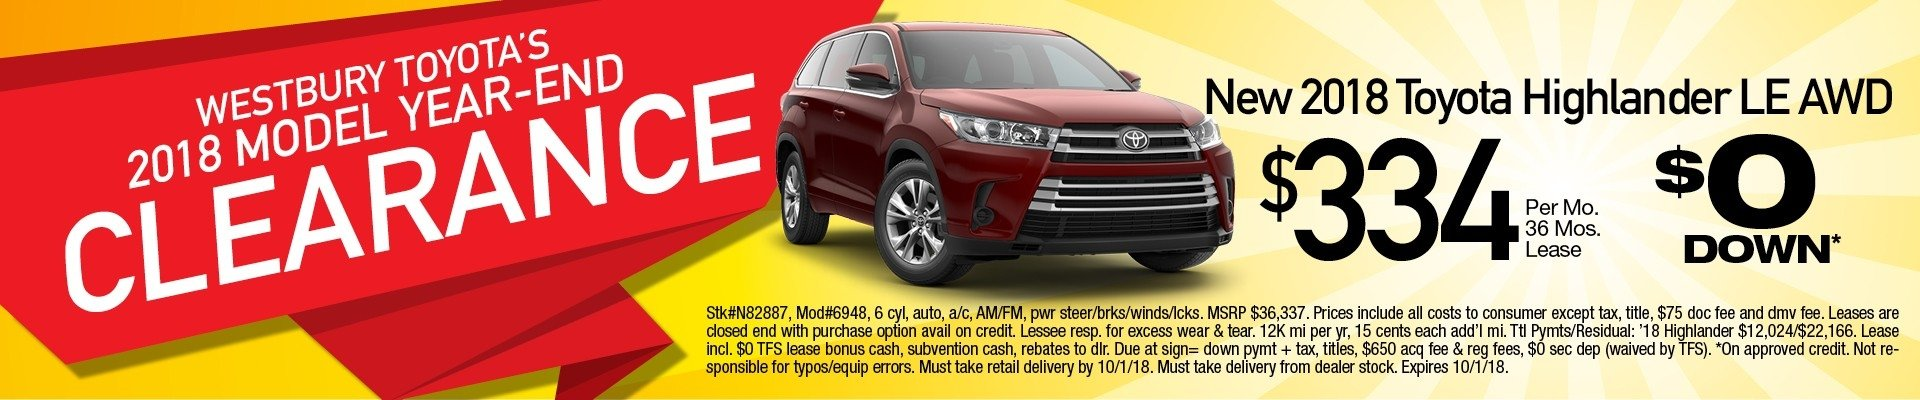 2018 Highlander Year-End Clearance